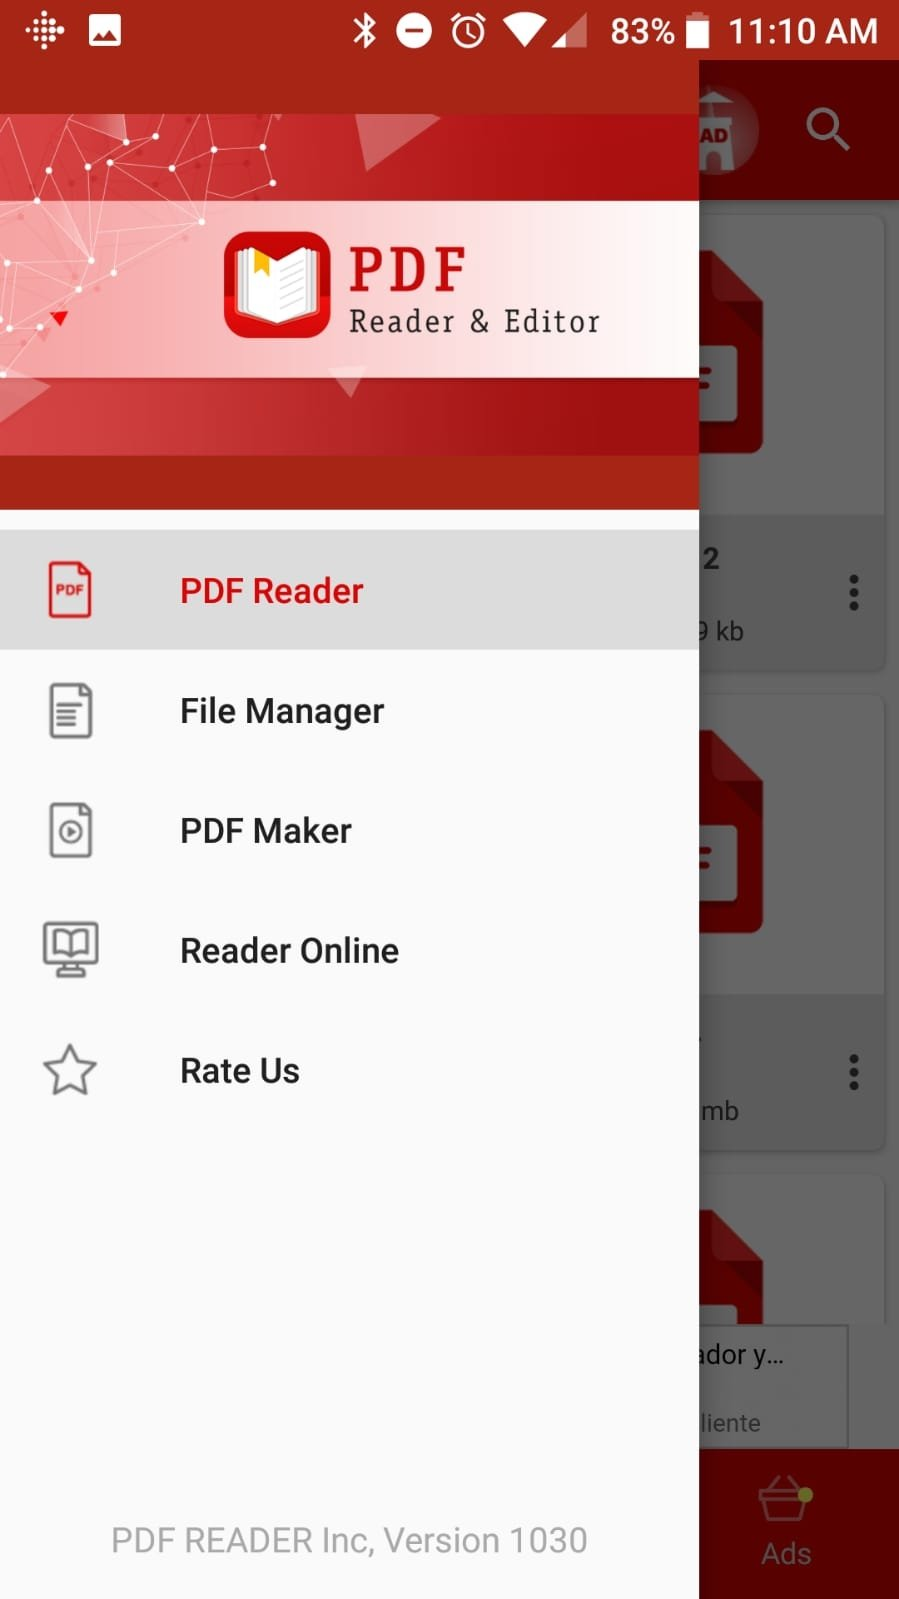 PDF Reader 2019 9 16 1229 - Download for Android APK Free